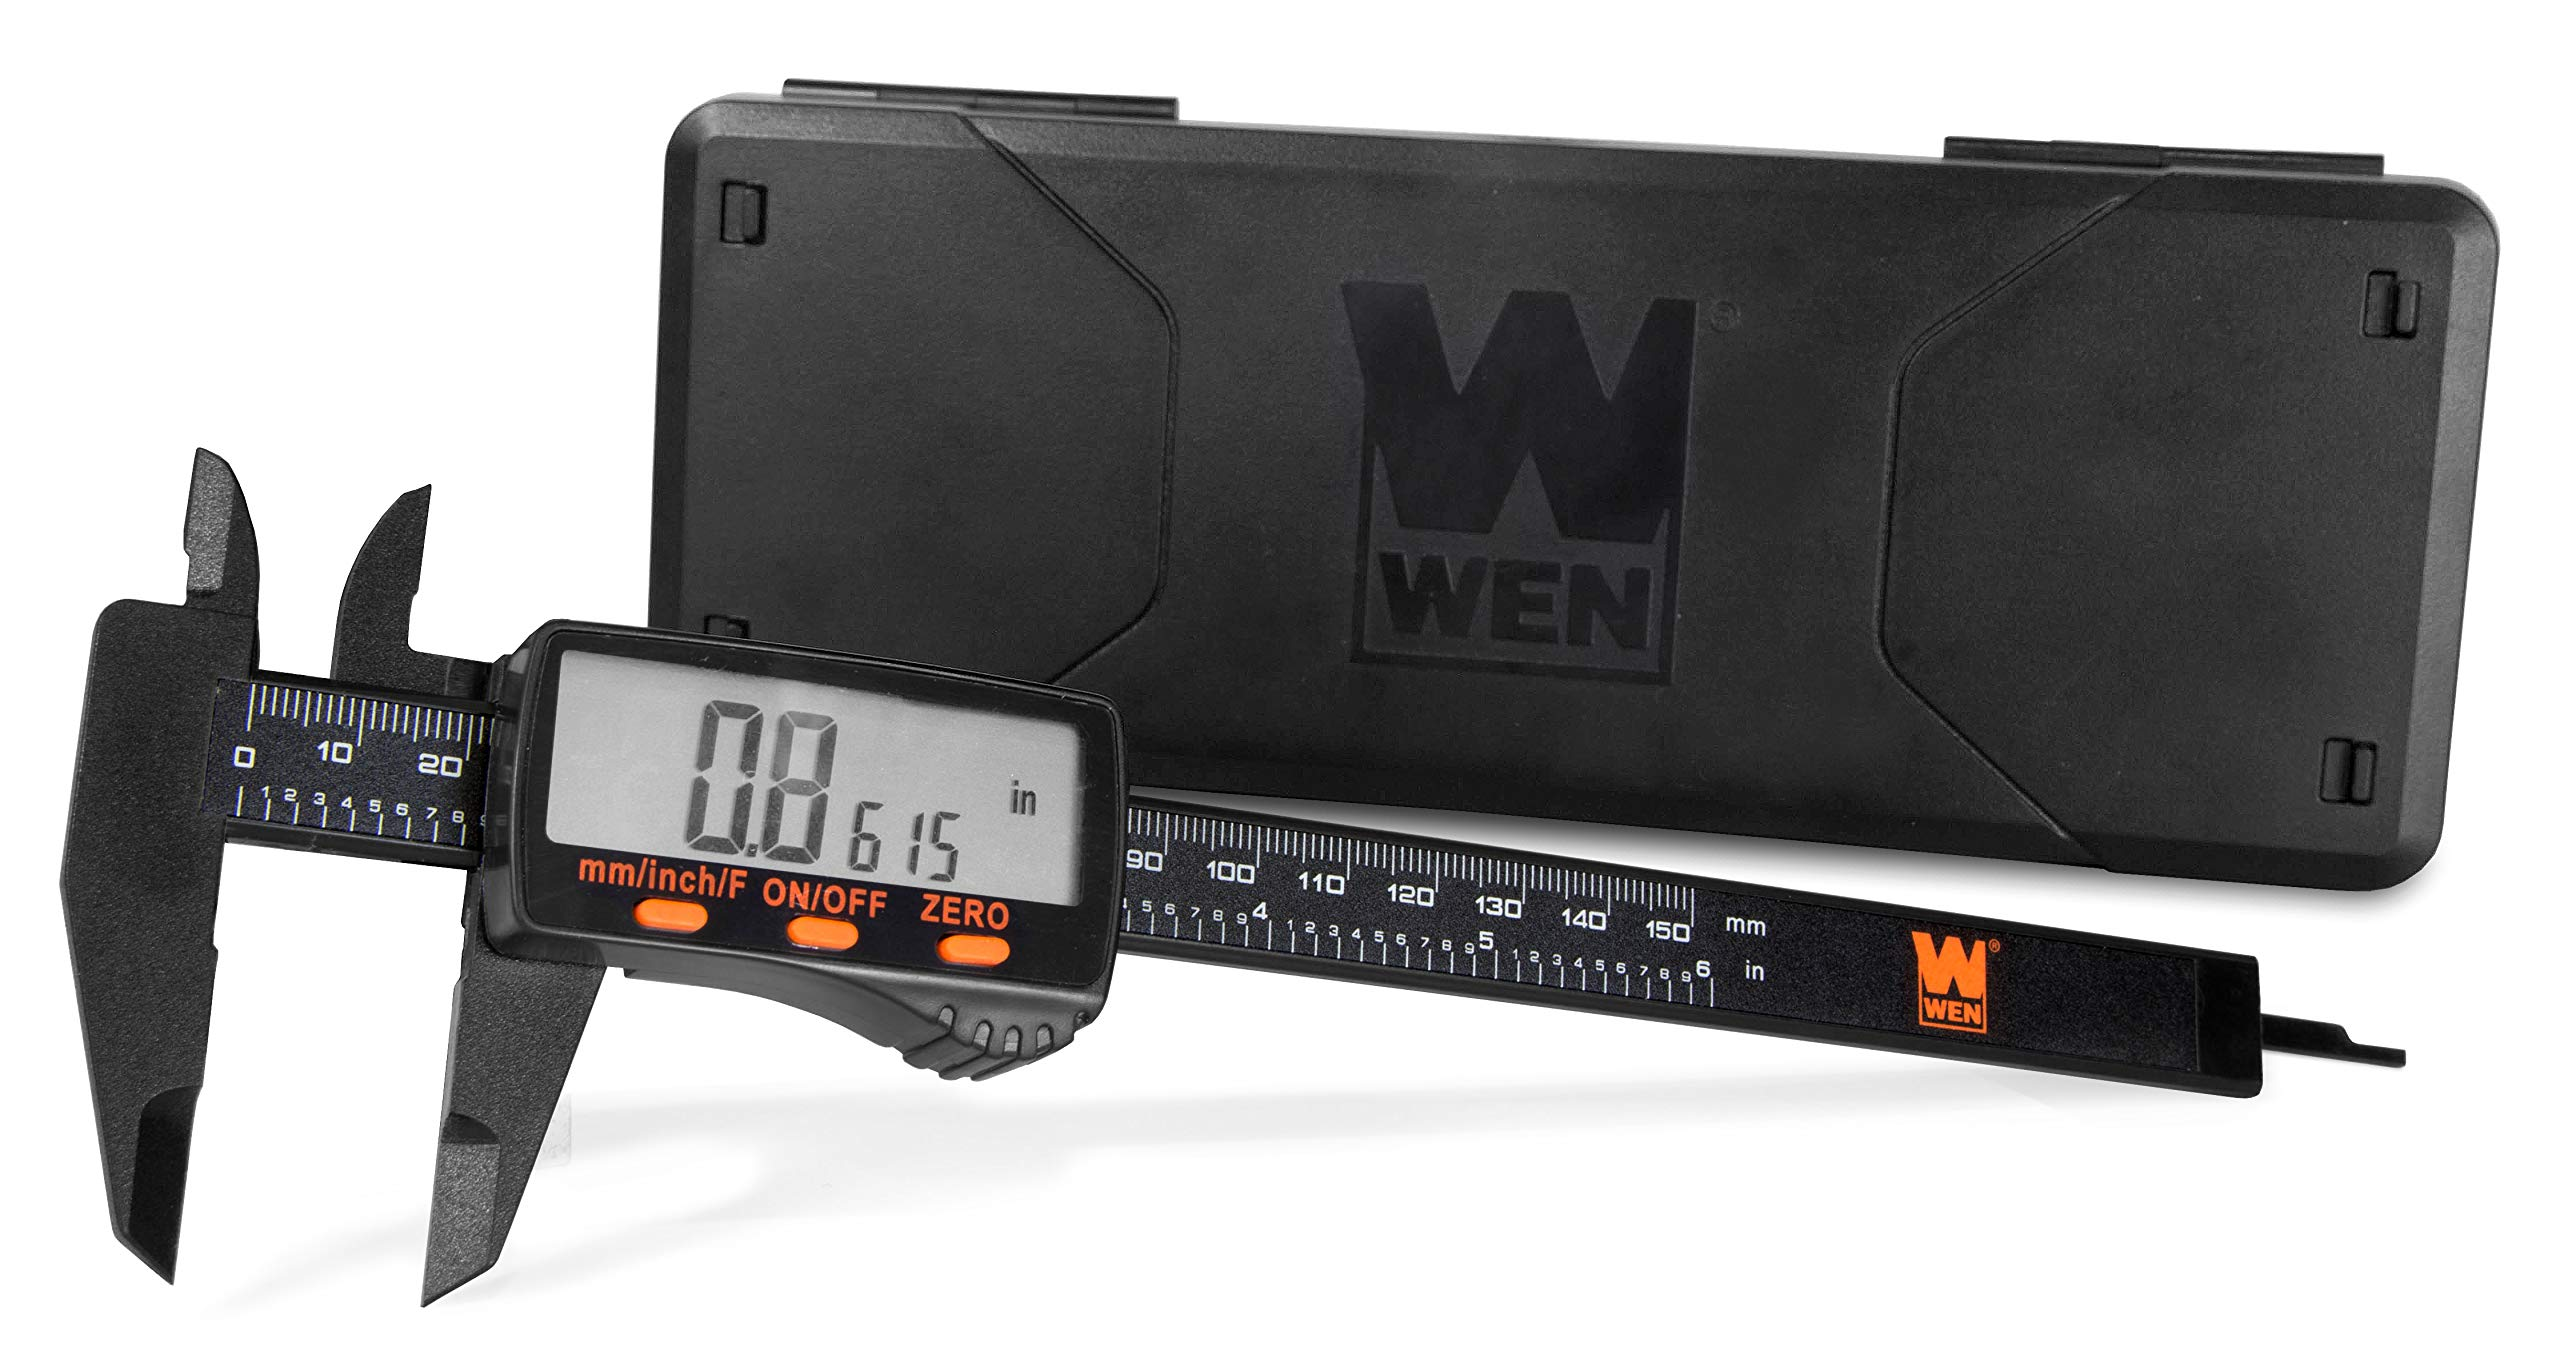 WEN 10761 Electronic 6.1-Inch Digital Caliper with LCD Readout and Storage Case